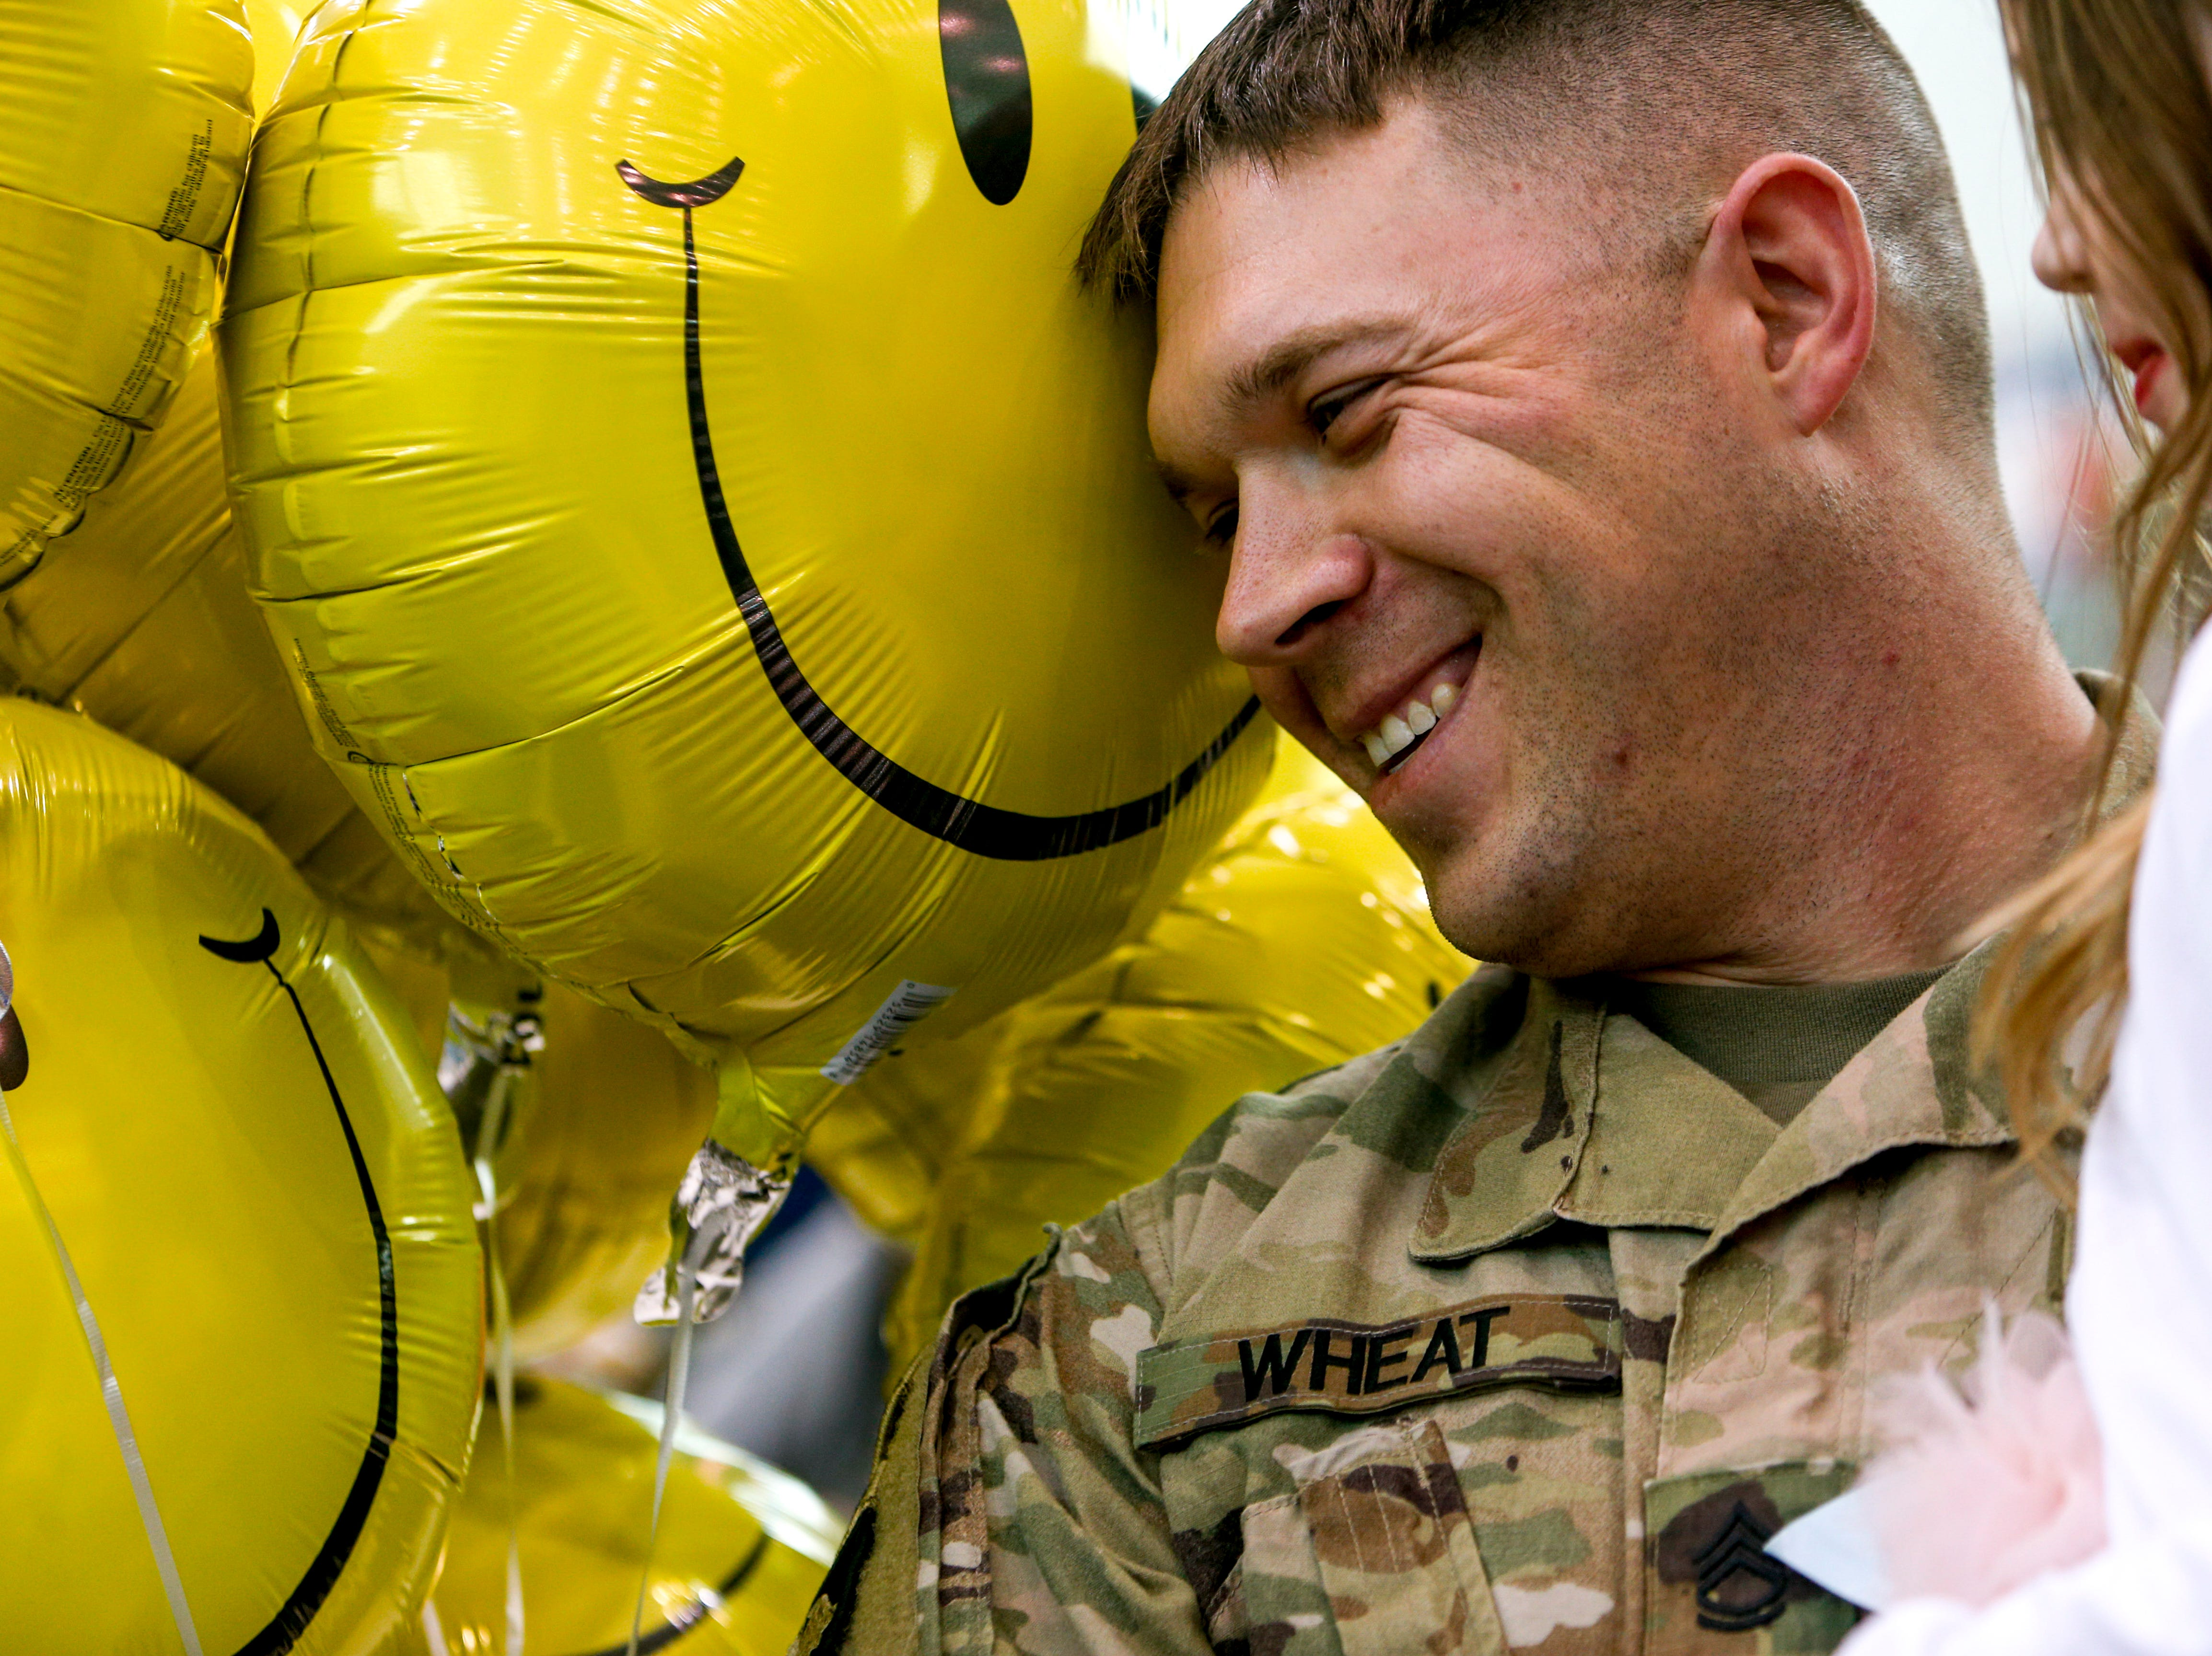 Sgt. Logan Wheat smiles at his family while holding up his daughter Annabelle Wheat, 7, upon seeing her for the first time after deployment during the return of soldiers from the 101st Combat Aviation Brigade of 101st Airborne Division (Air Assault) at Campbell Army Air Field in Fort Campbell, KY., on Sunday, March 10, 2019.